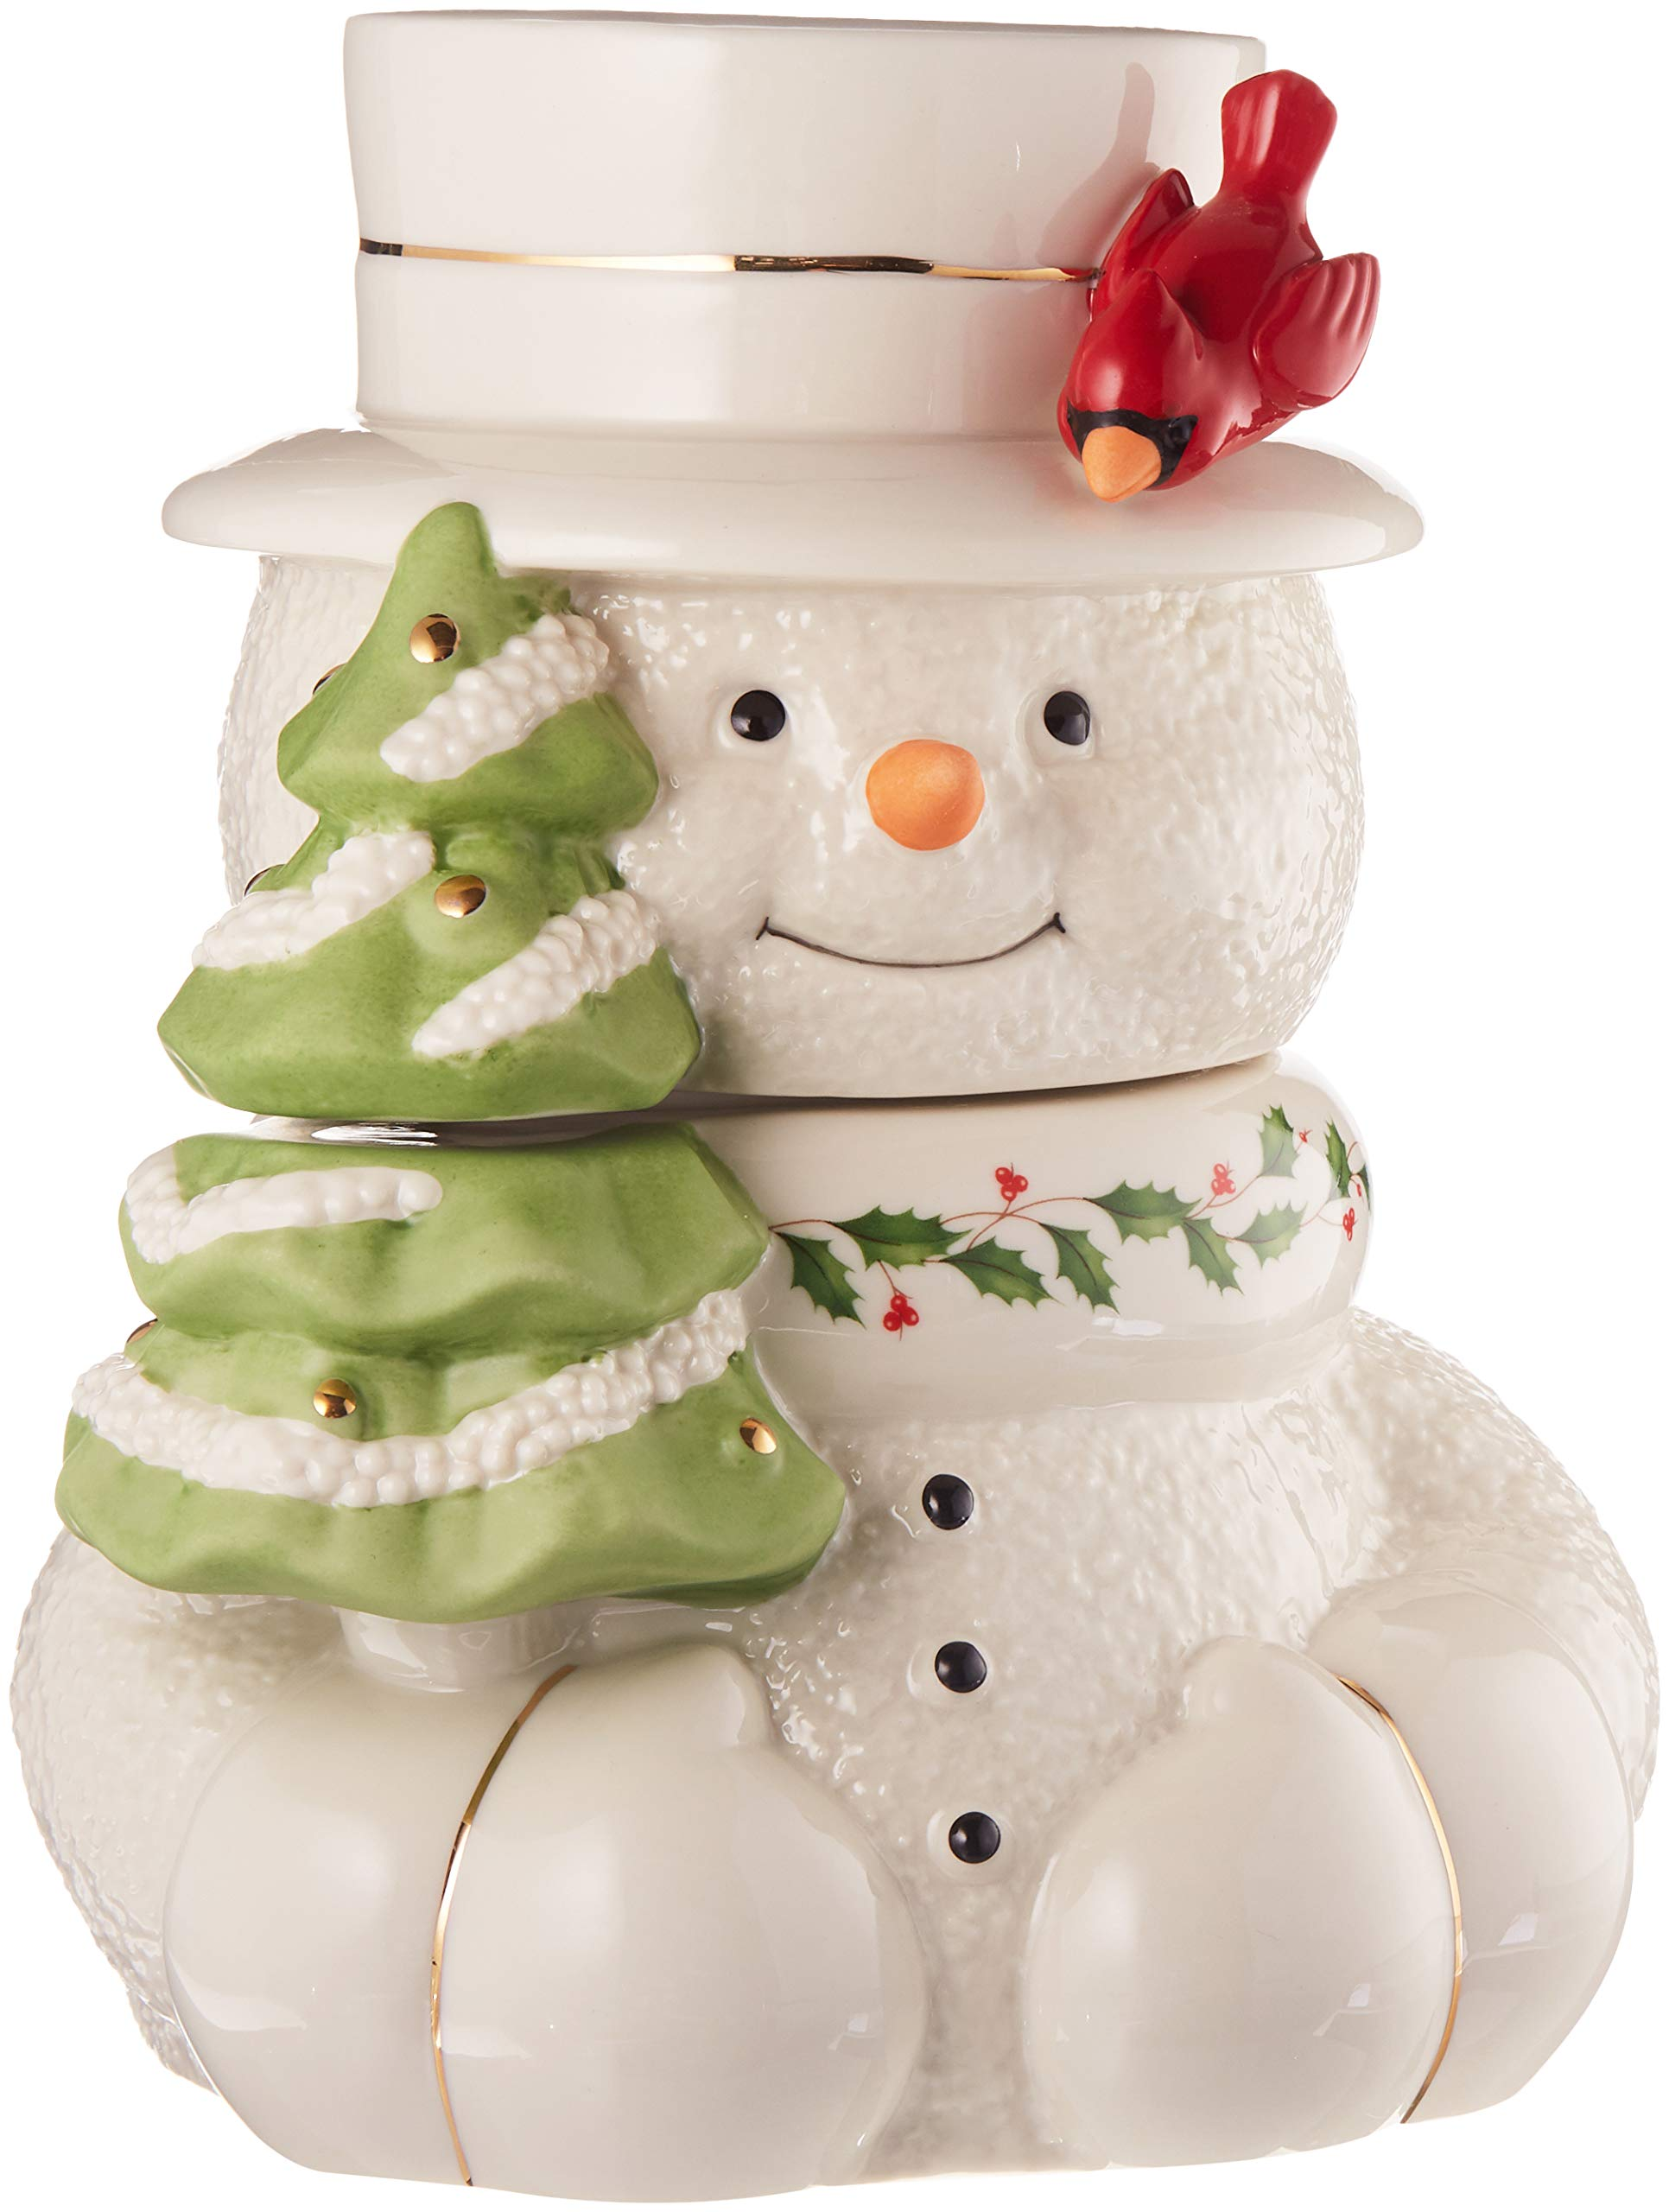 Image of Porcelain Lenox Happy Holly Days Snowman Cookie Jar